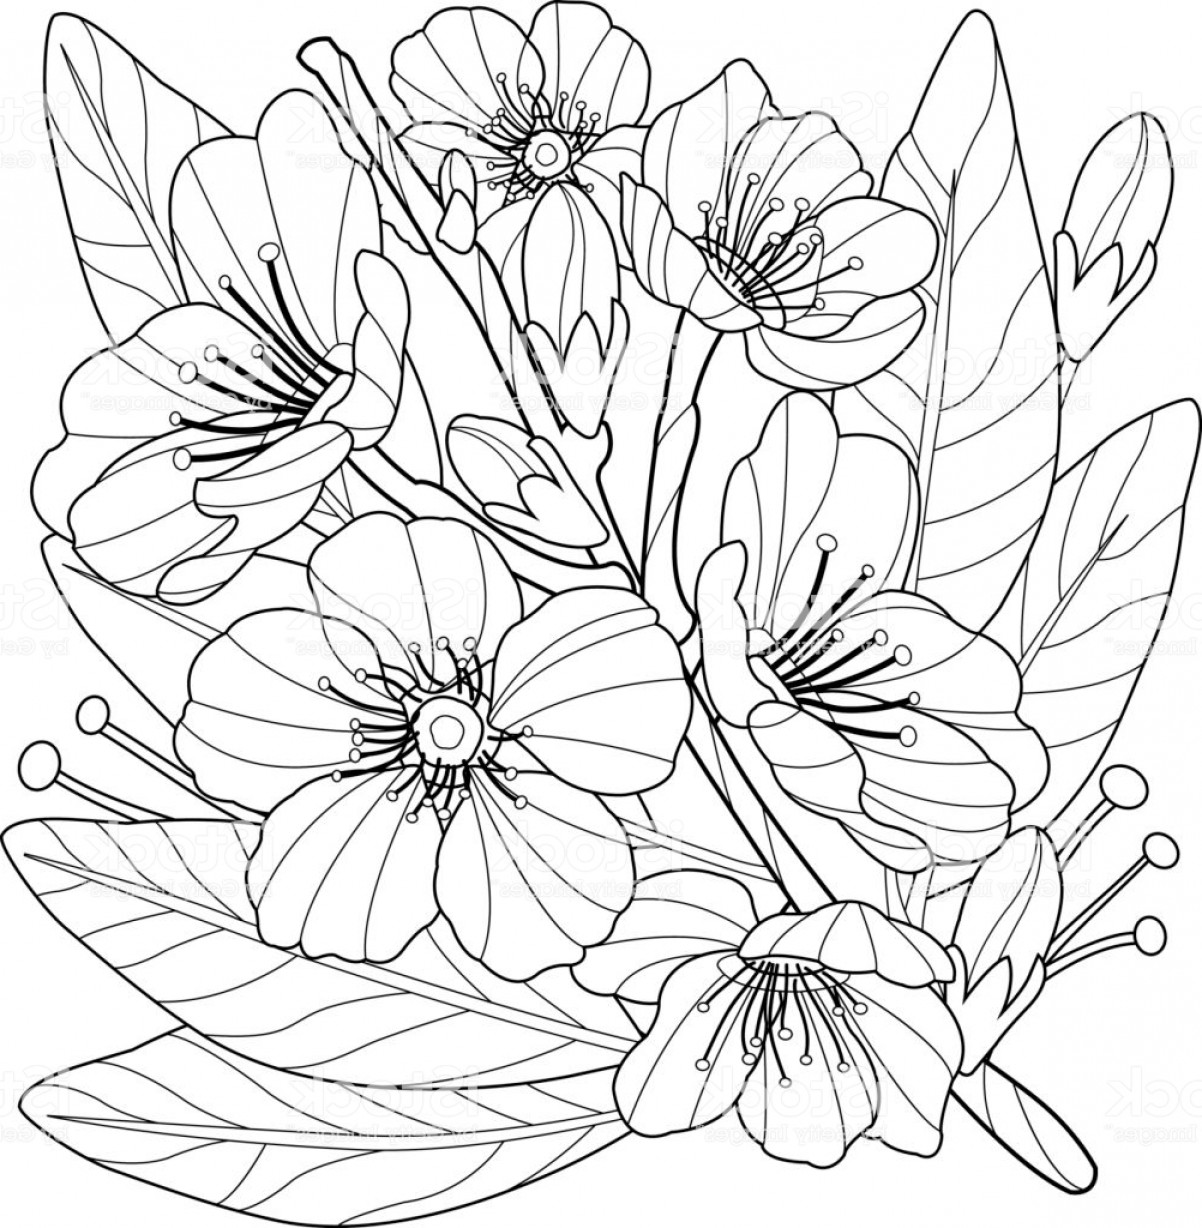 Almond Tree Vector: Blossoming Almond Tree Branch With Flowers Coloring Book Page Gm